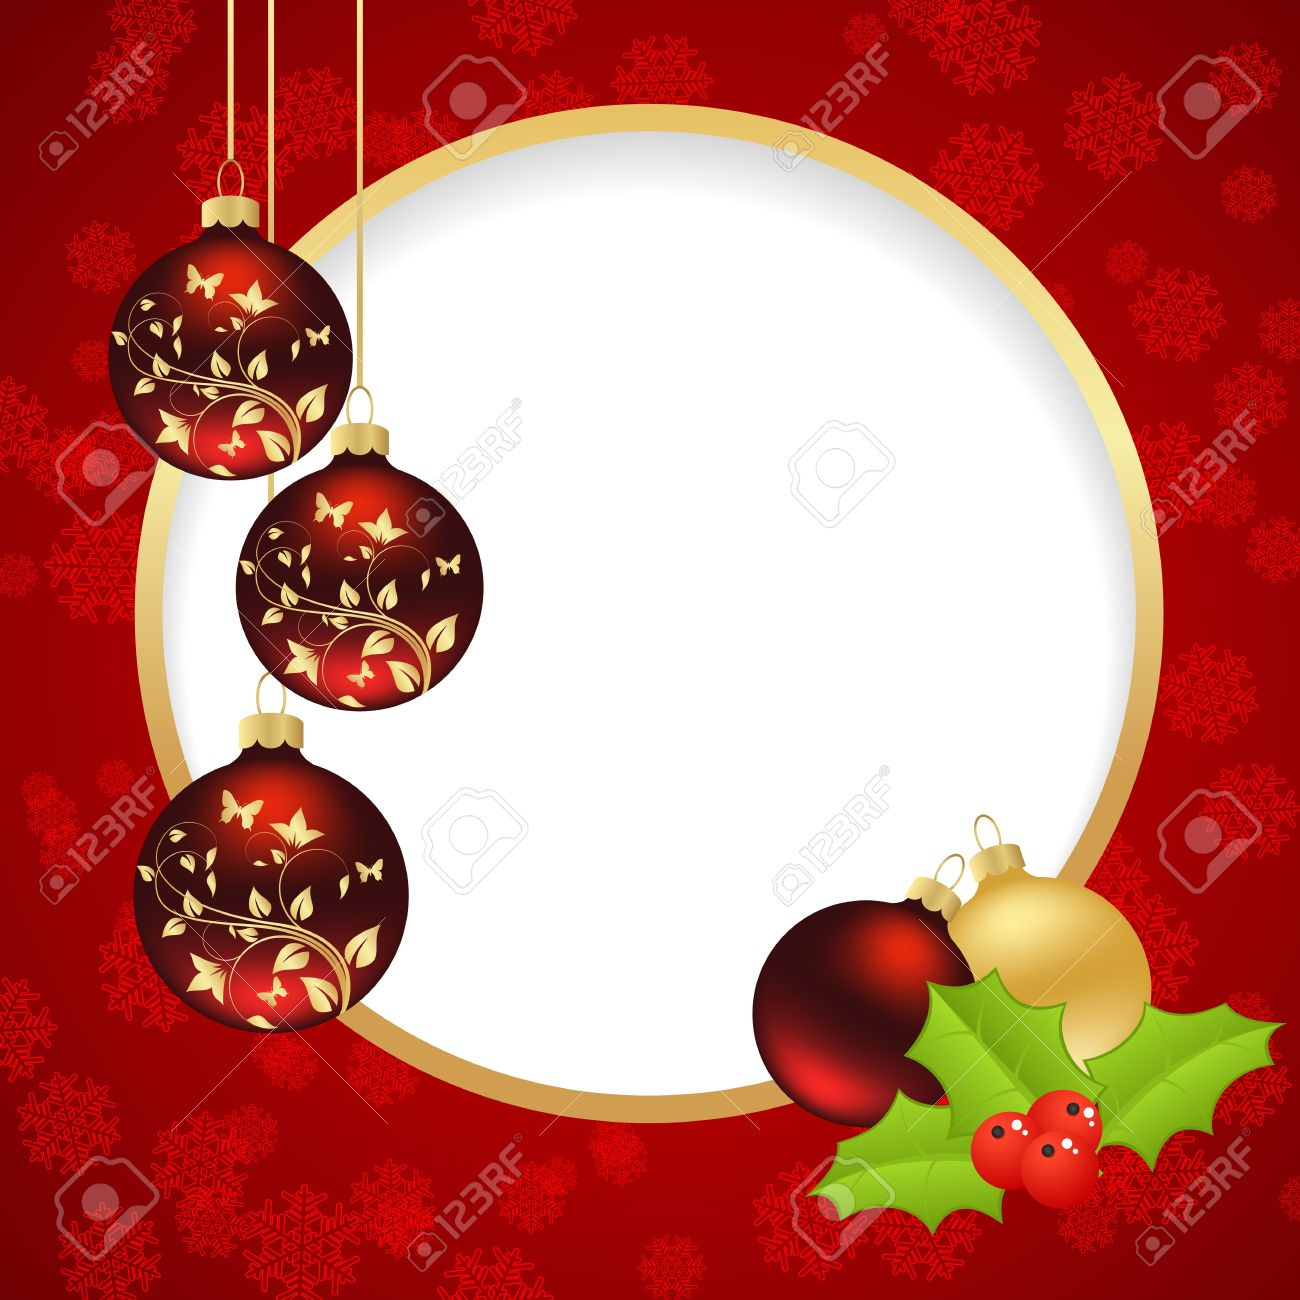 Template Christmas Card With Round Hole Vector Illustration Royalty